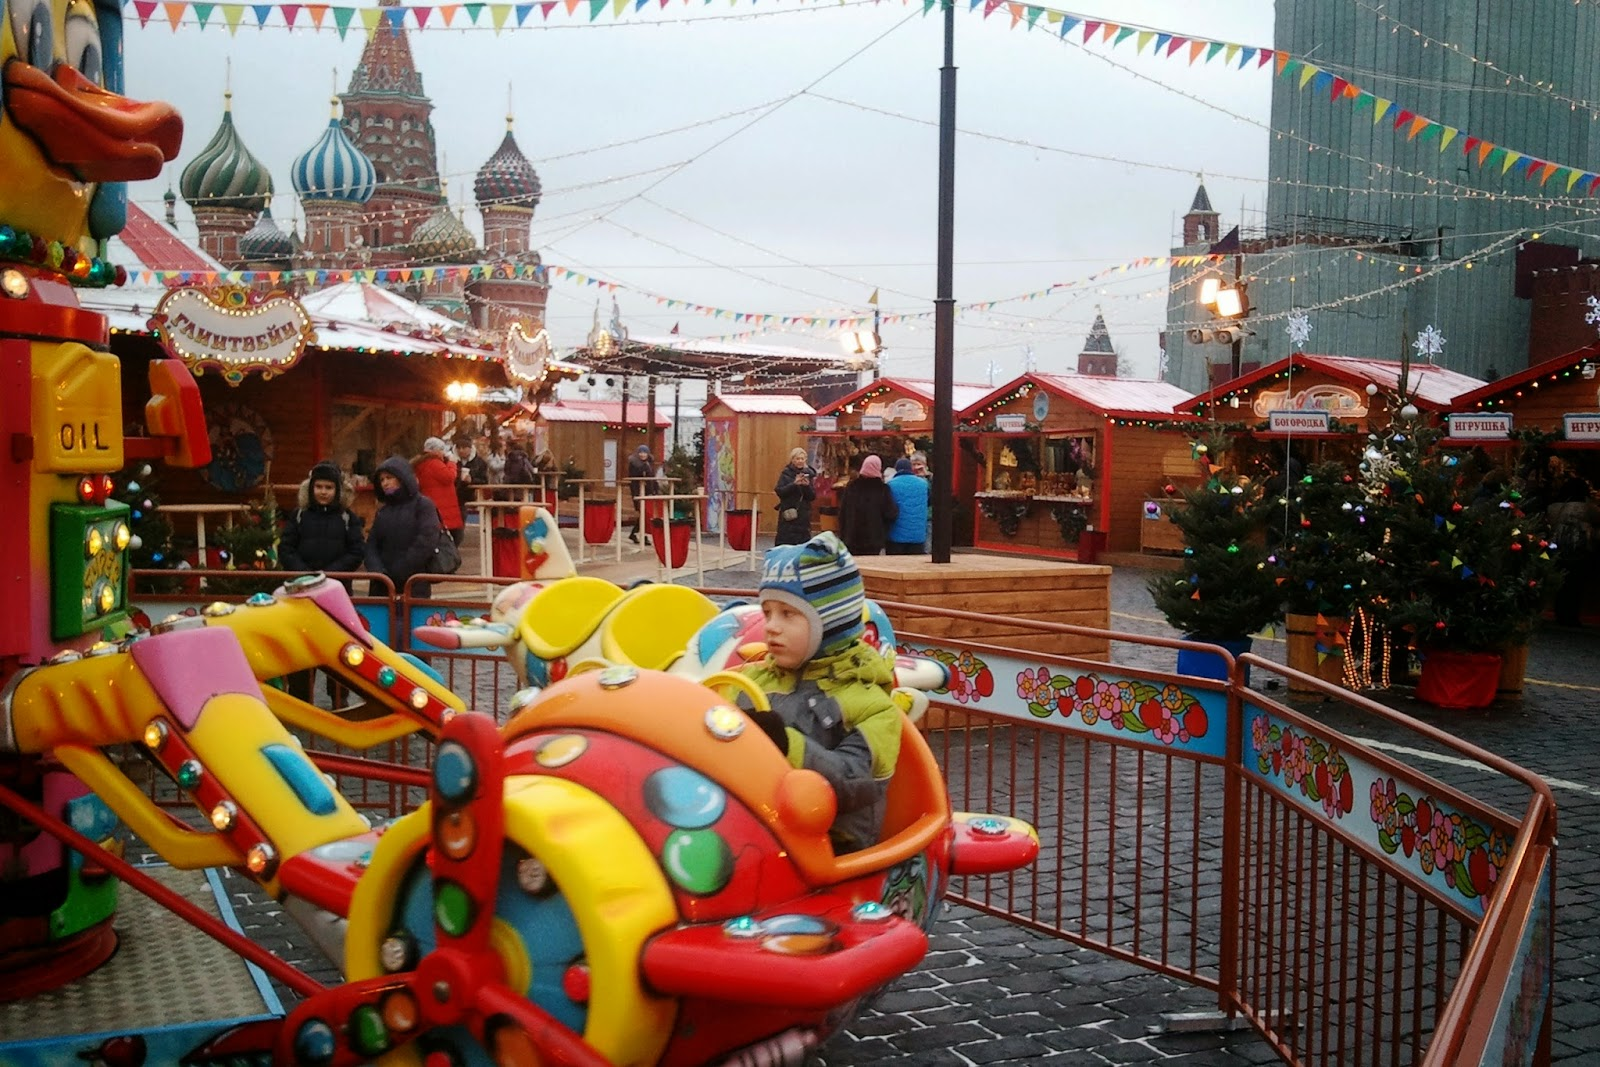 celebrating new year in moscow russia holiday fair